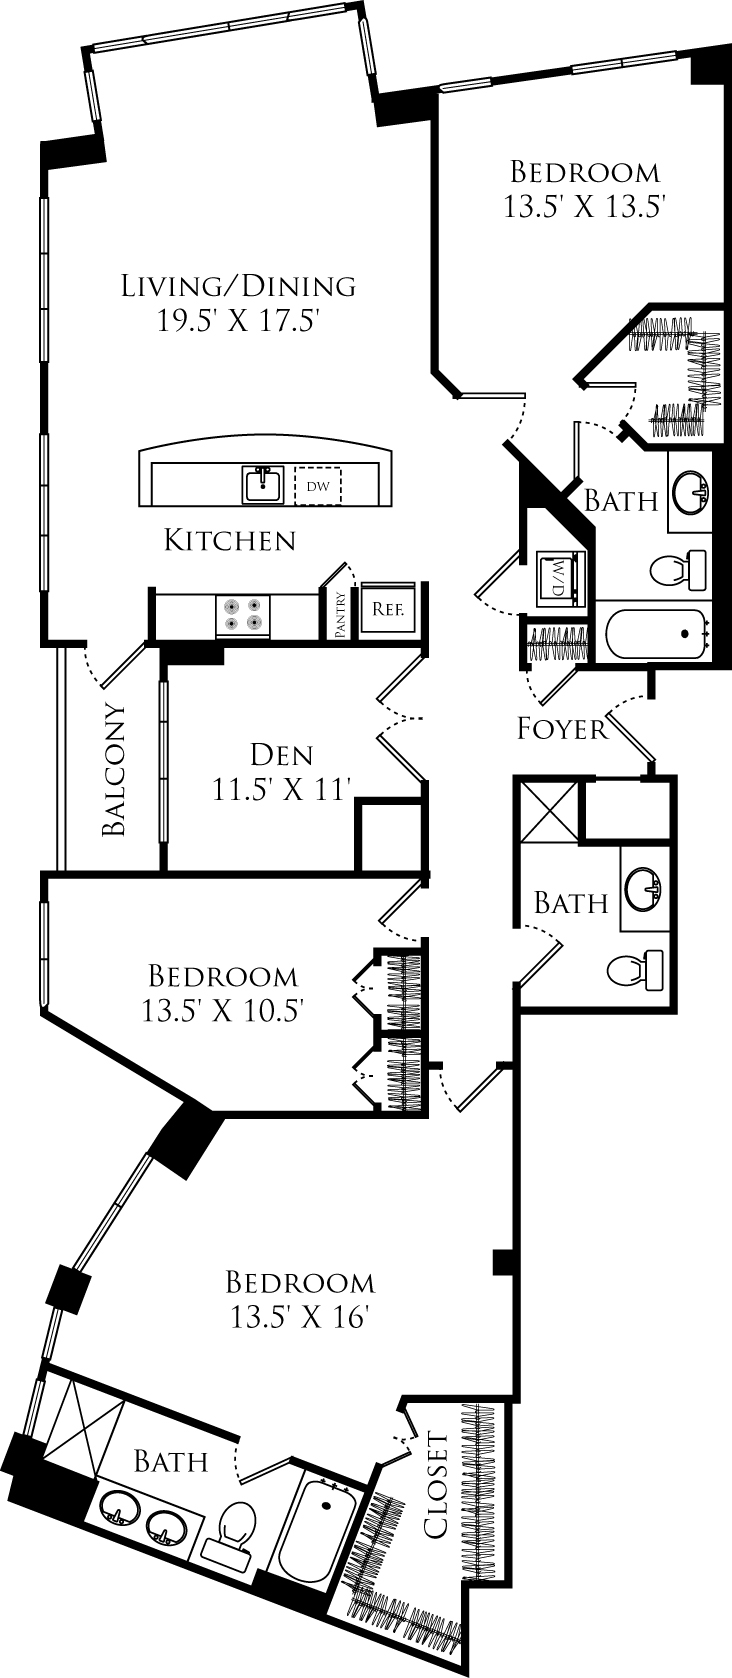 C3K + den floor plan is 3 beds, 3 baths and is 1920 square feet